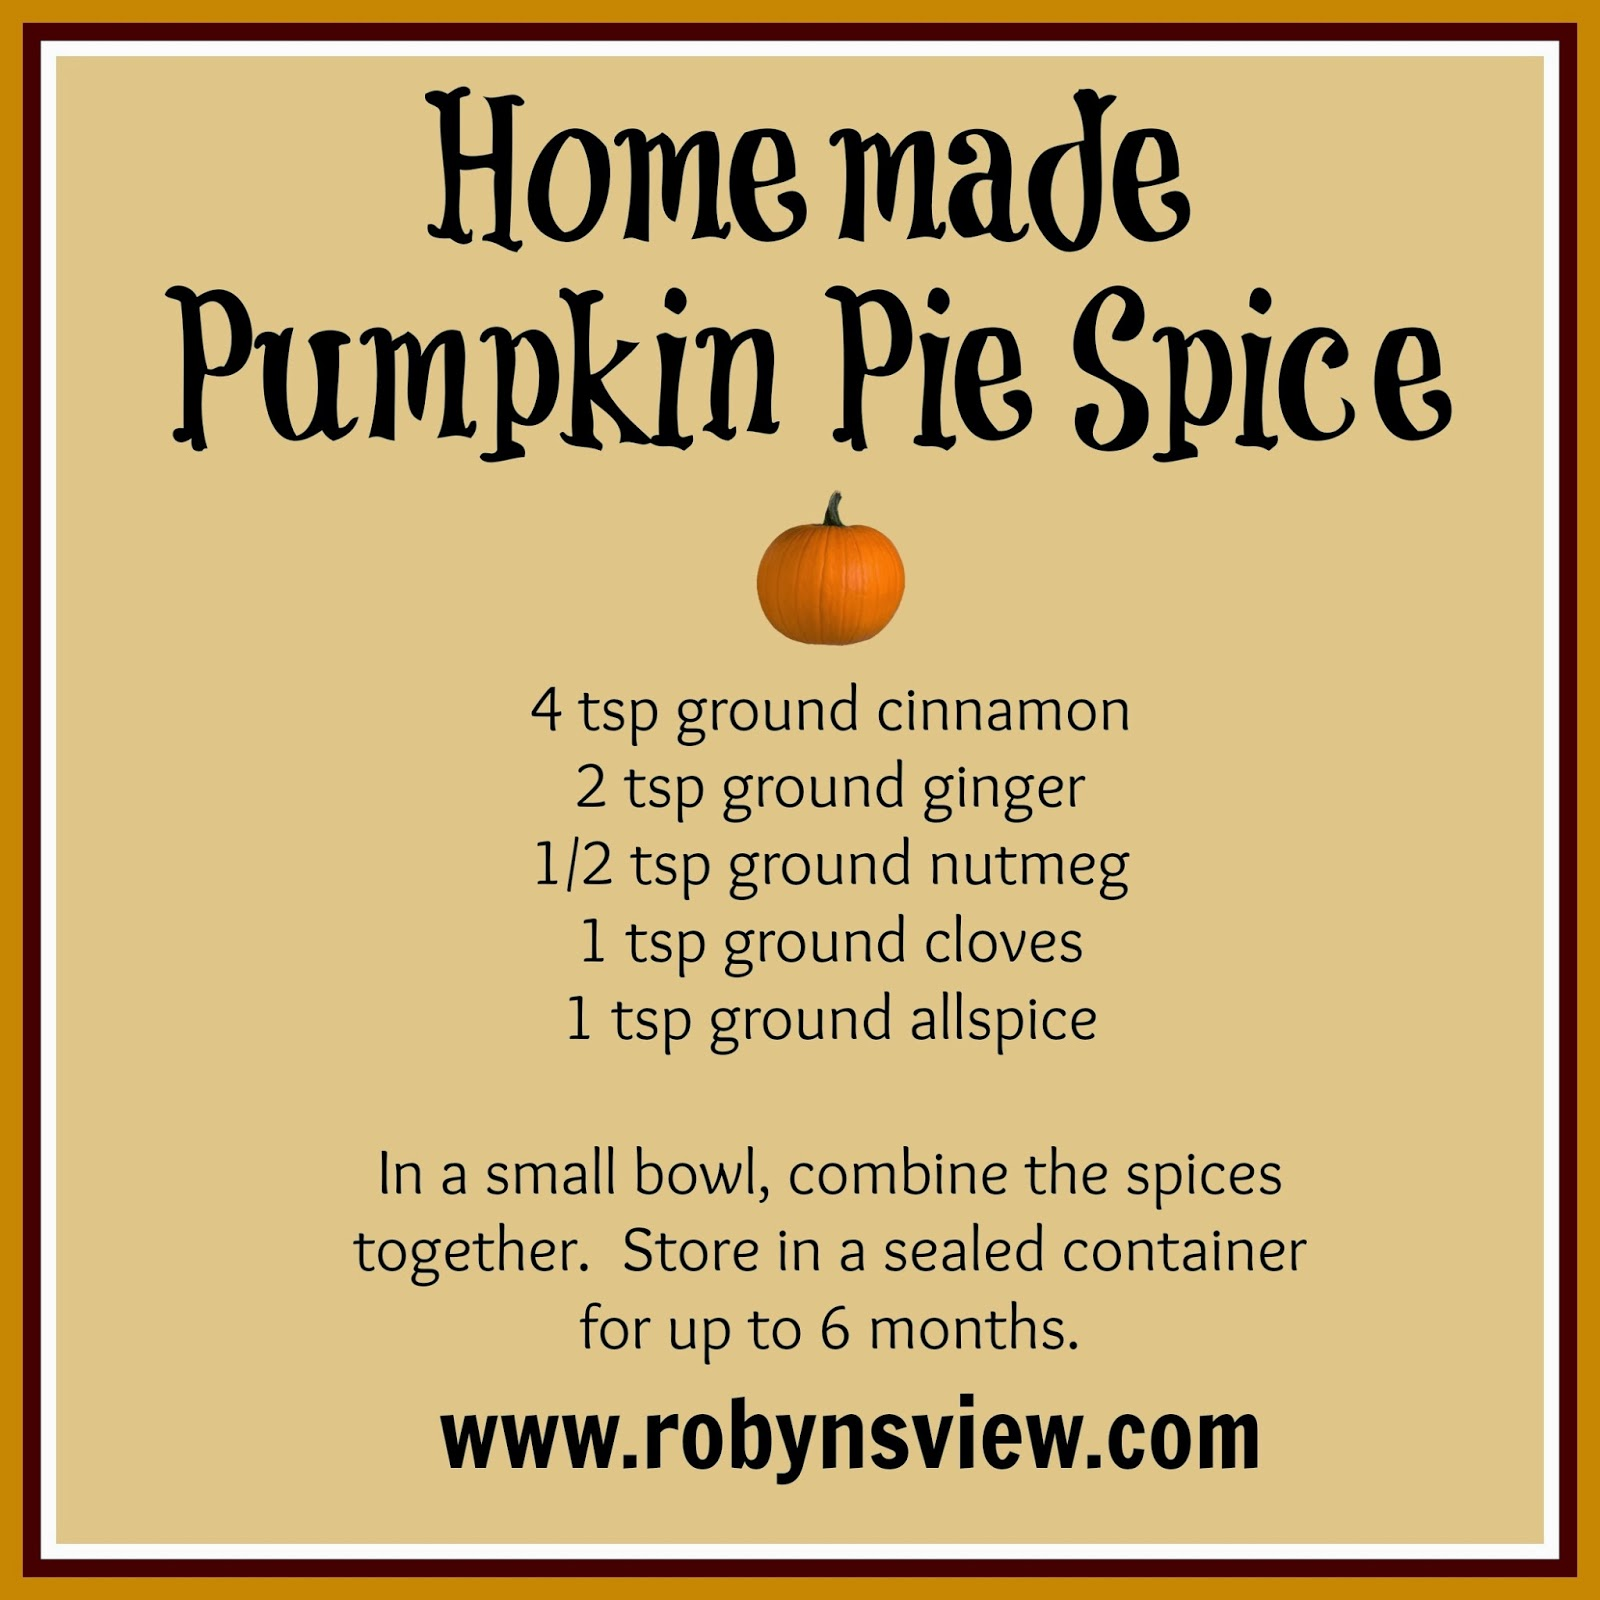 Kitchen Basics 101: Make Your Own Pumpkin Pie Spice Mix - Robyn's View